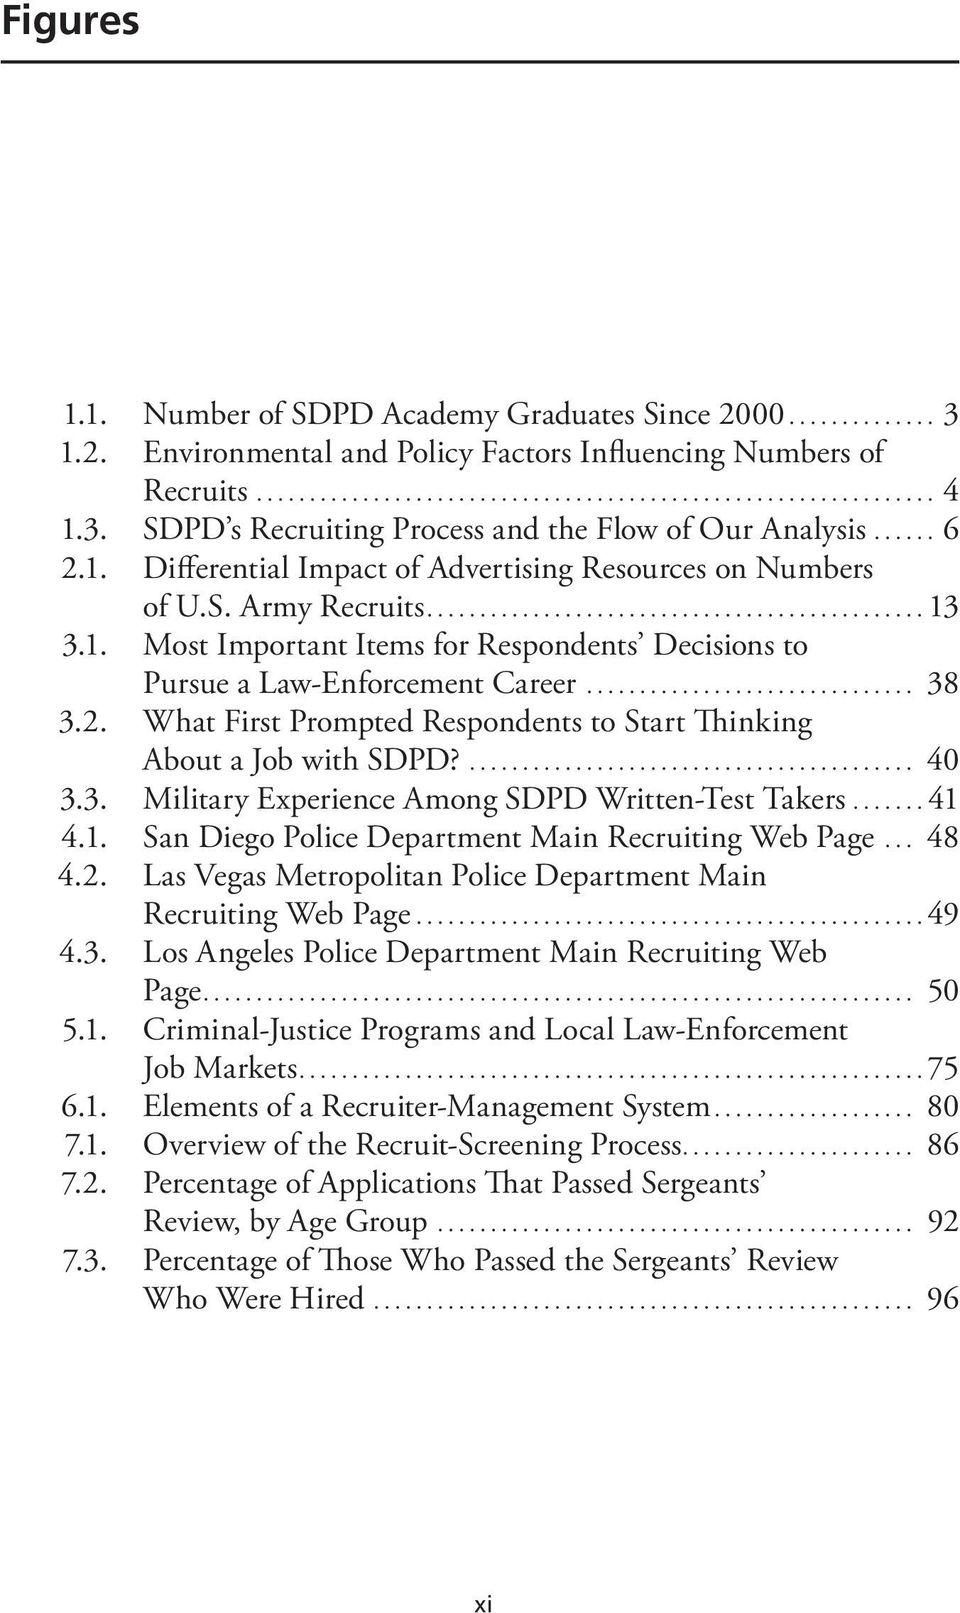 ... 40 3.3. Military Experience Among SDPD Written-Test Takers...41 4.1. San Diego Police Department Main Recruiting Web Page... 48 4.2.